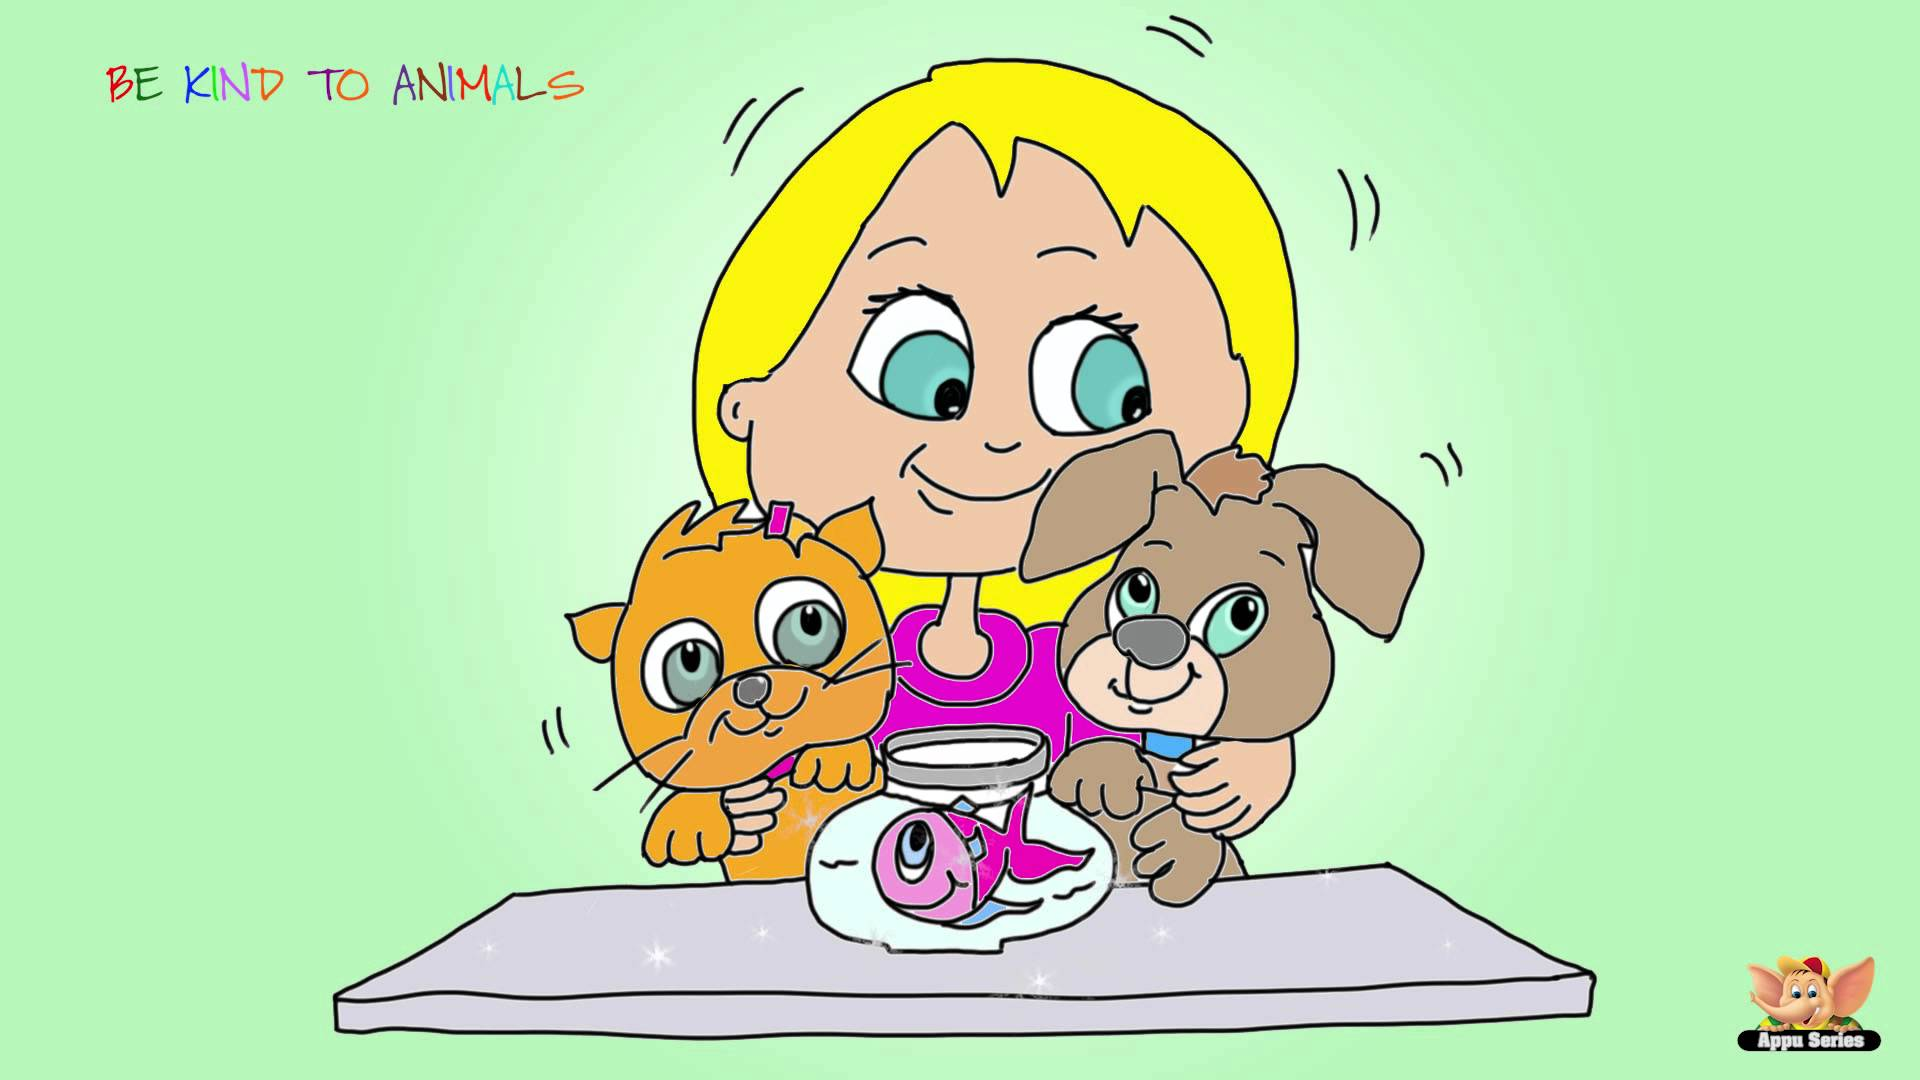 Being kind to animals clipart banner royalty free Kindness Towards Animals Clipart banner royalty free